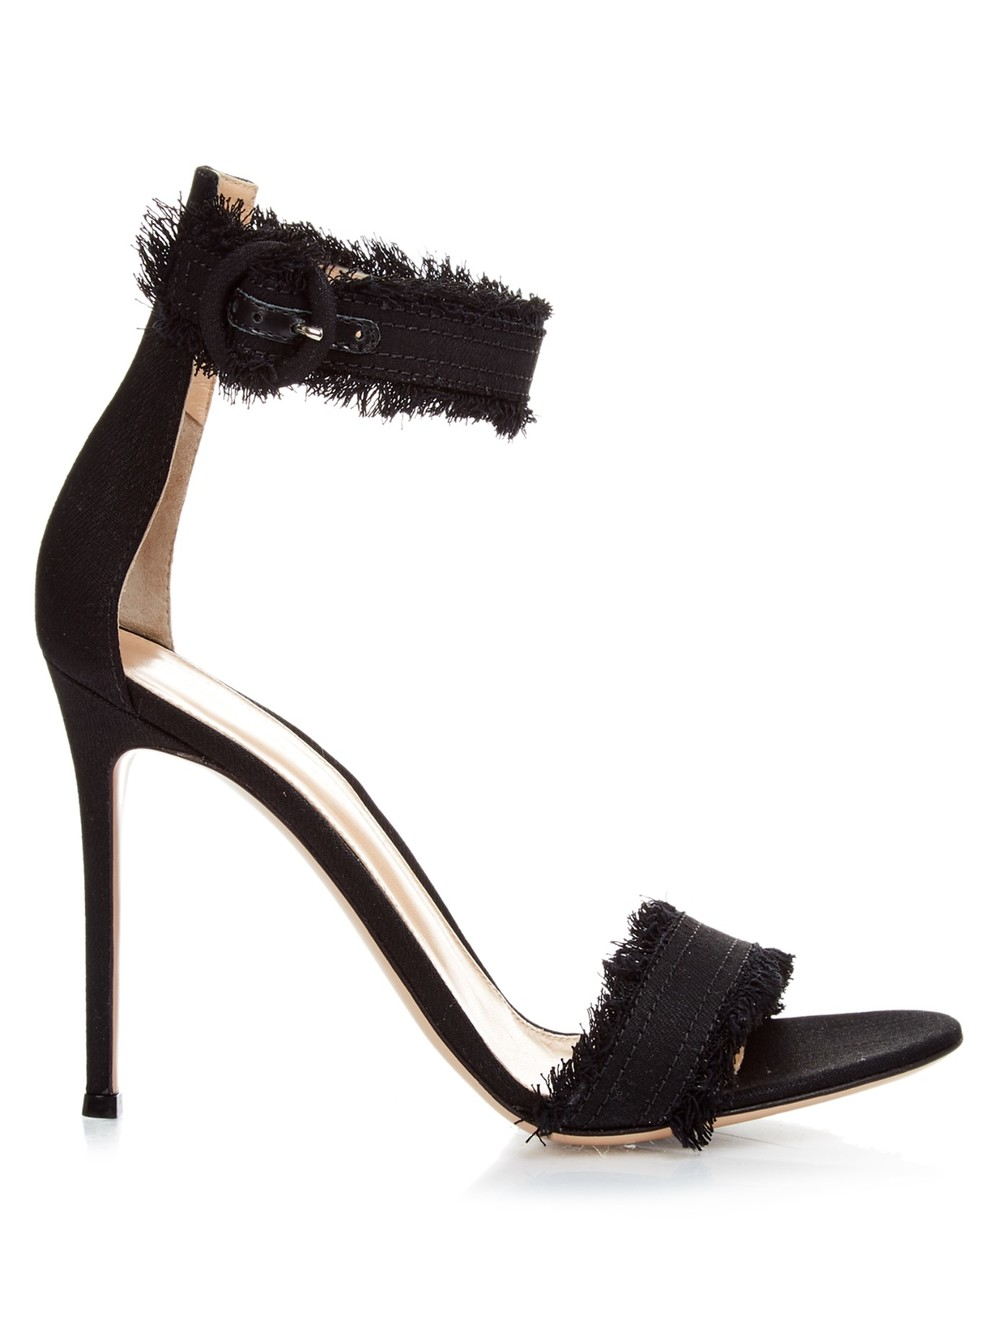 Gianvito Rossi pumps at Matches.jpg